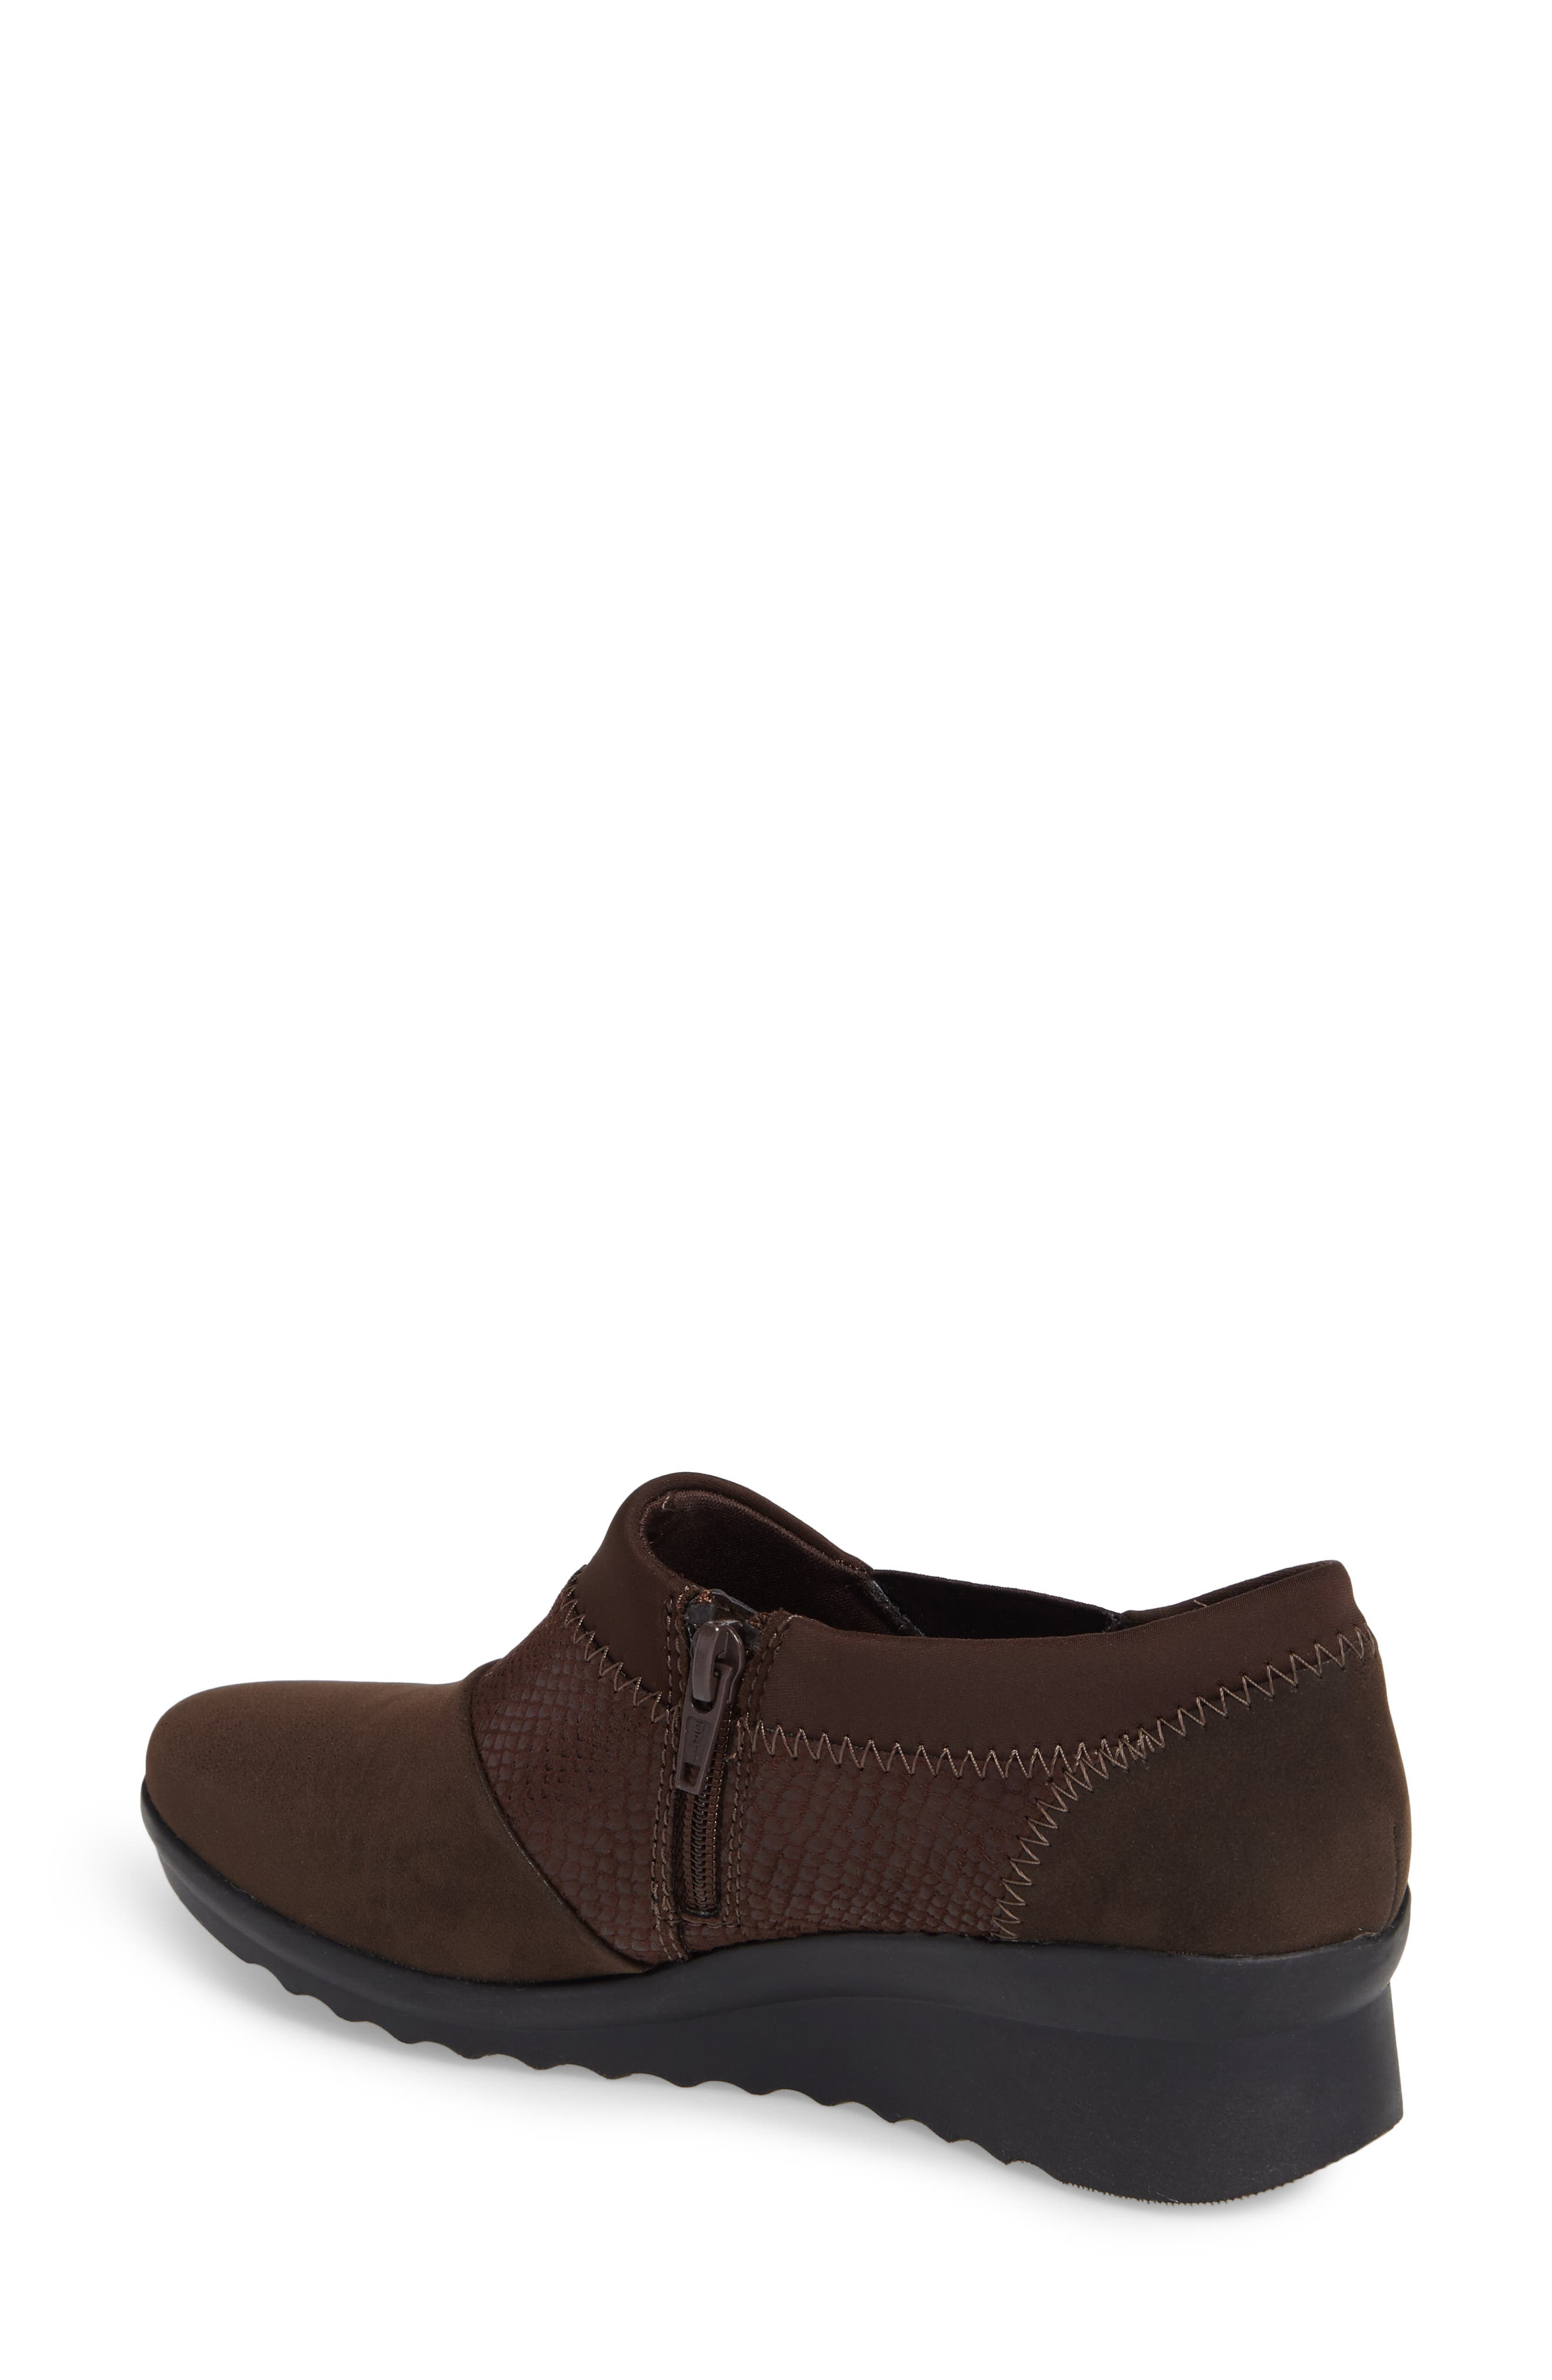 Caddell Denali Ankle Loafer,                             Alternate thumbnail 2, color,                             Brown Fabric